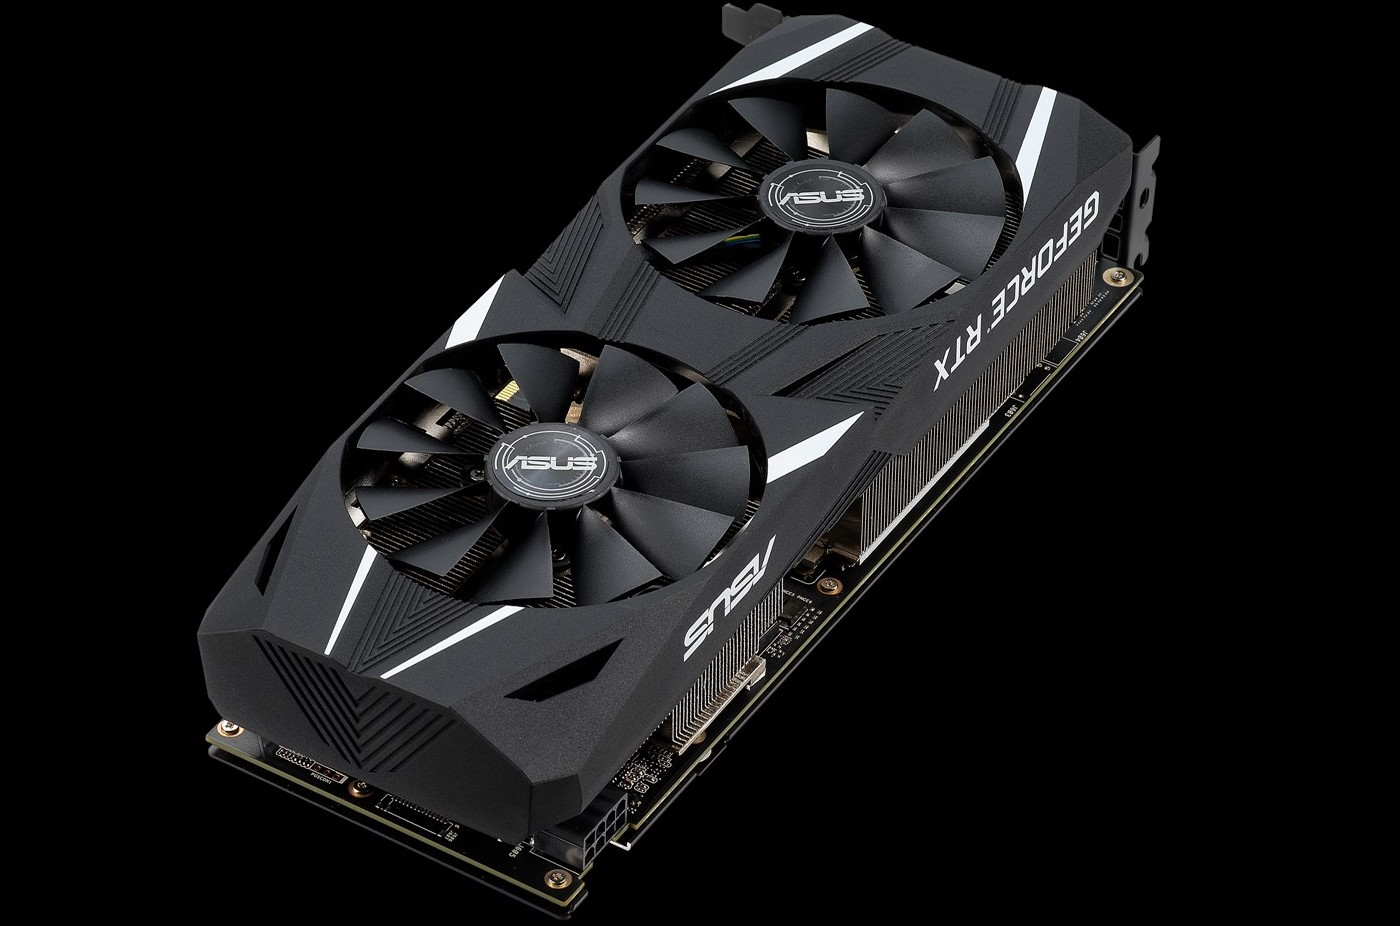 Card đồ họa Asus GeForce RTX 2060 6GB GDDR6 Dual Advance